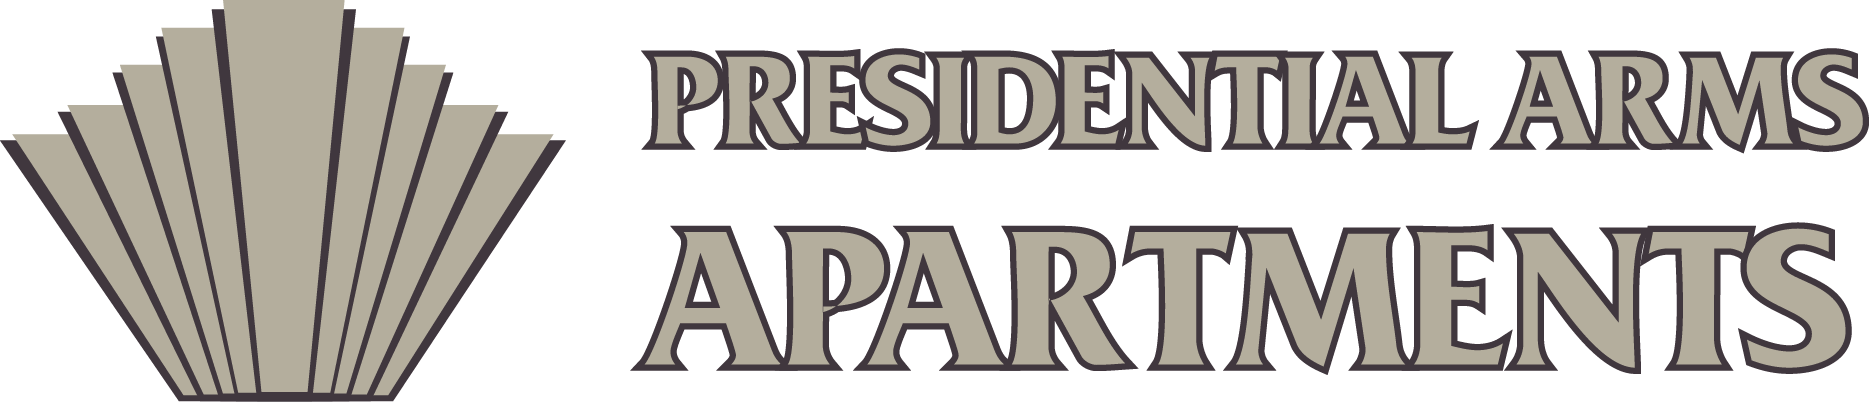 Presidential Arms Apartments